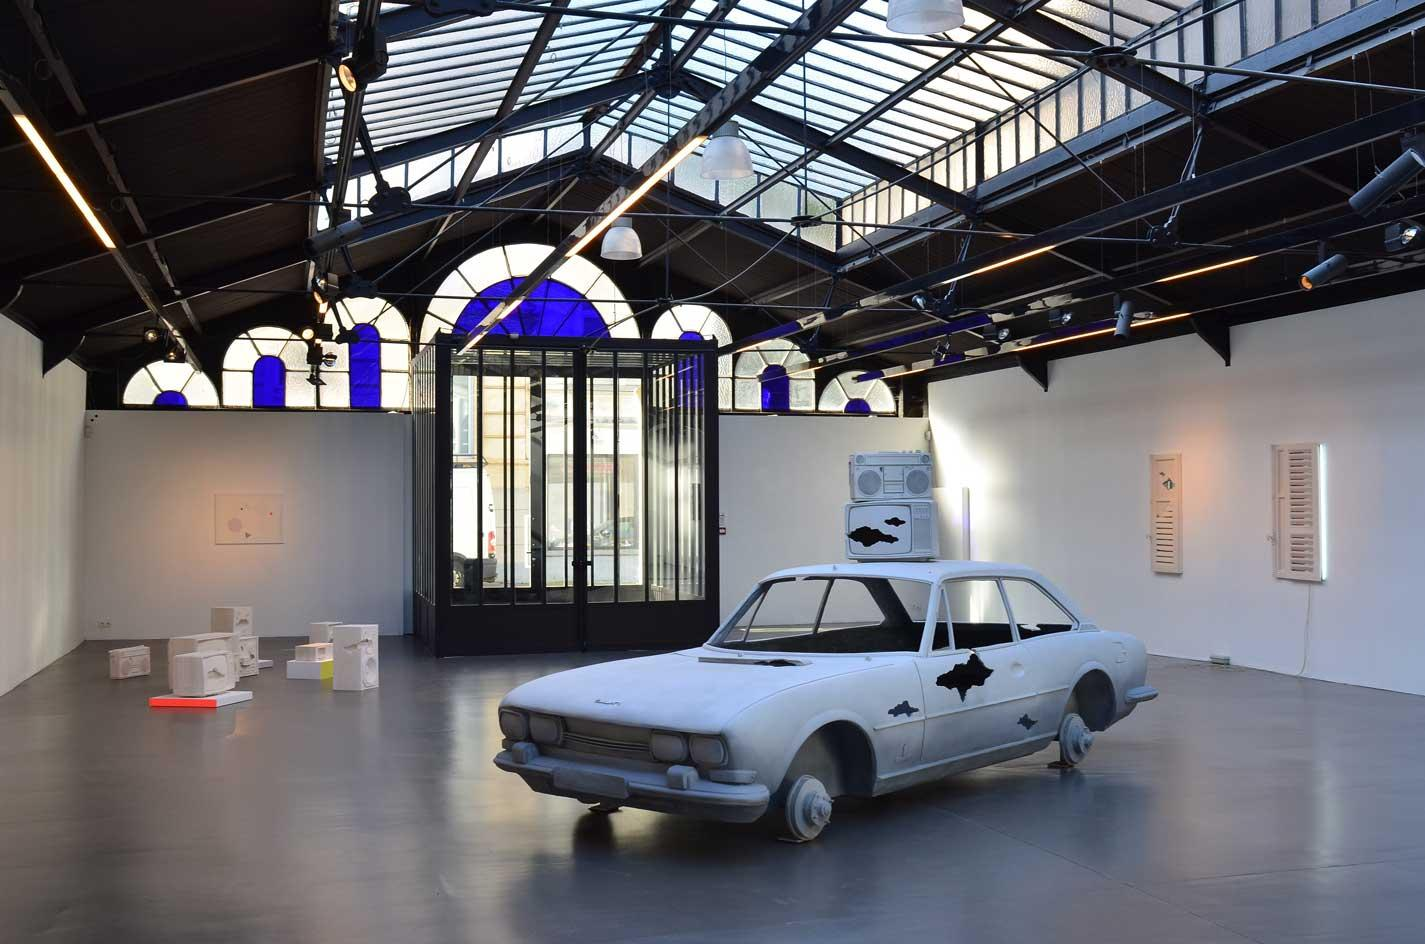 Exhibition view Martine Feipel & Jean Bechameil 'A Hundred Hours from Home' at La Patinoire Royale, a former roller skating rink in Brussels